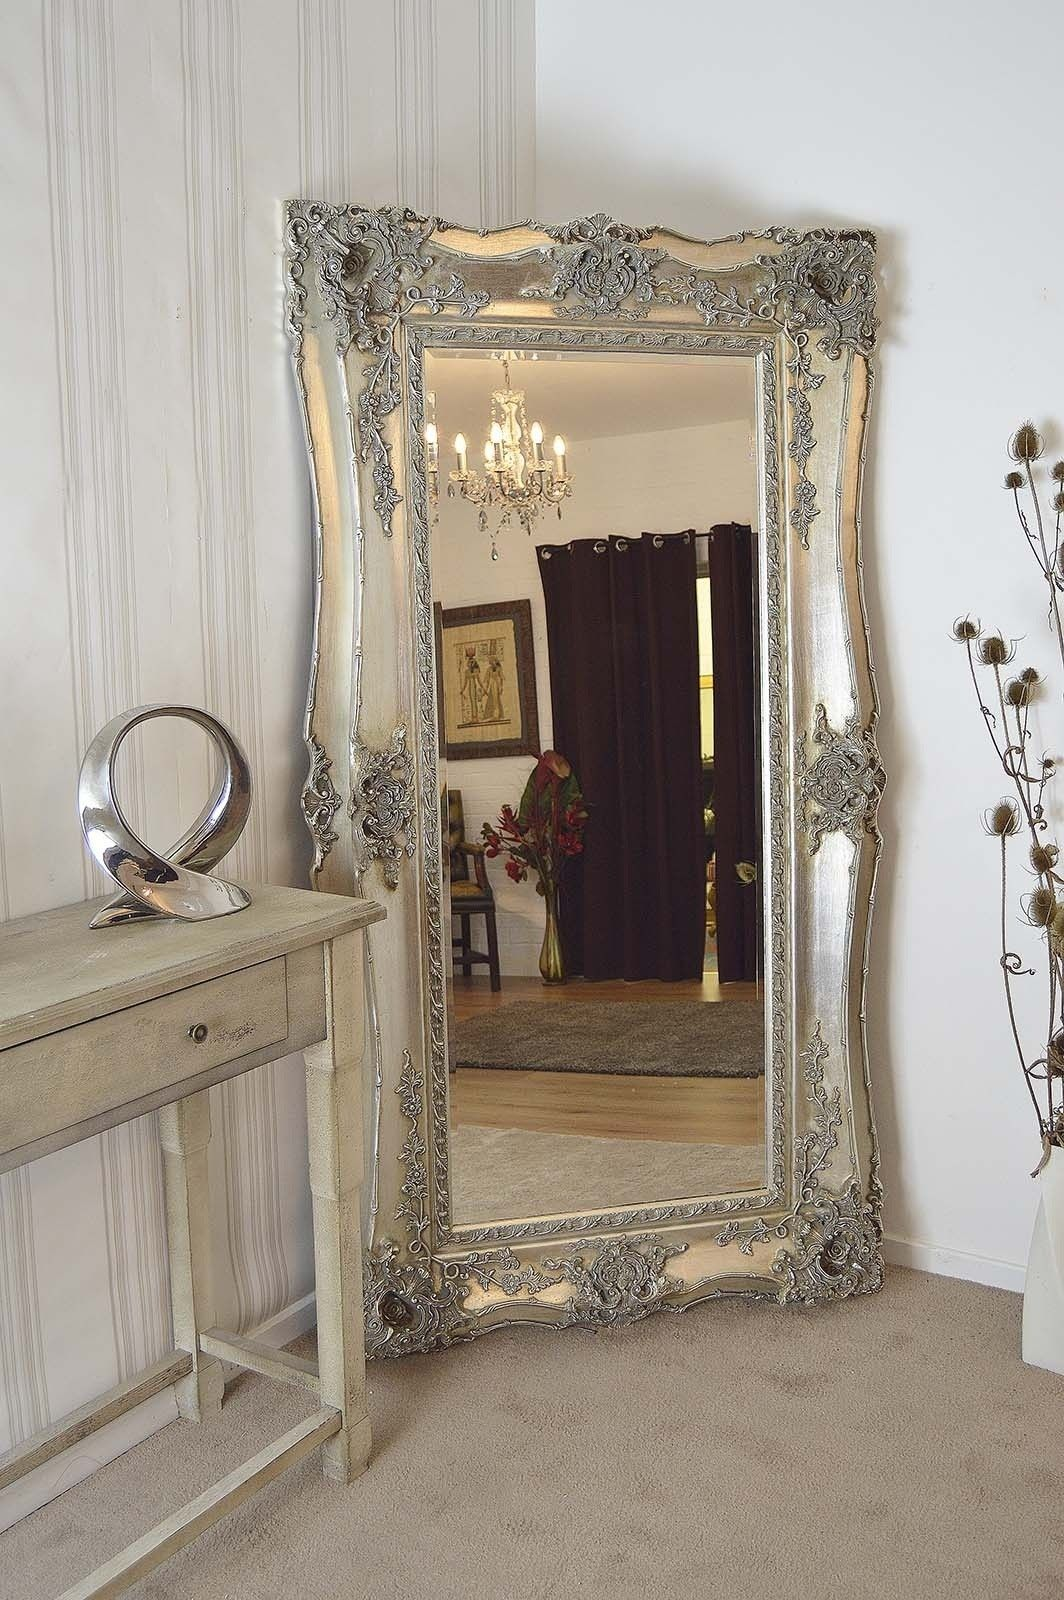 Extra Large Ornate Wall Mirrors Large Wall Mirror Mirror Wall Living Room Antique Mirror Wall